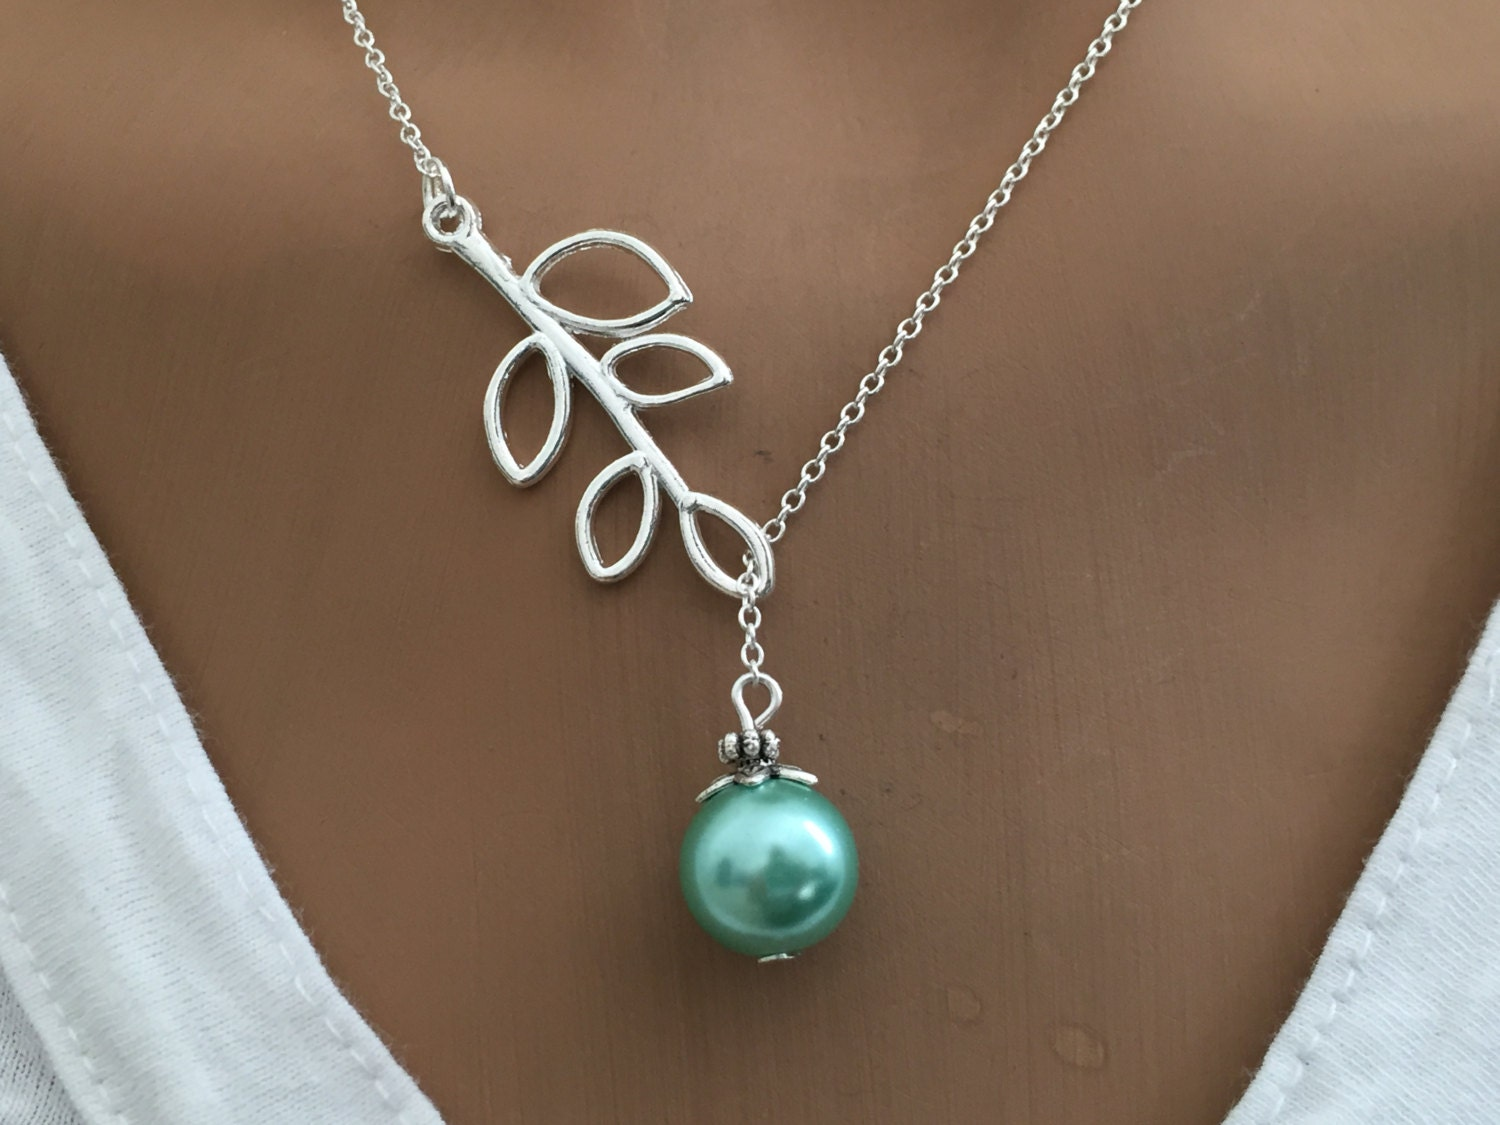 lariat style necklace pearl necklace gift